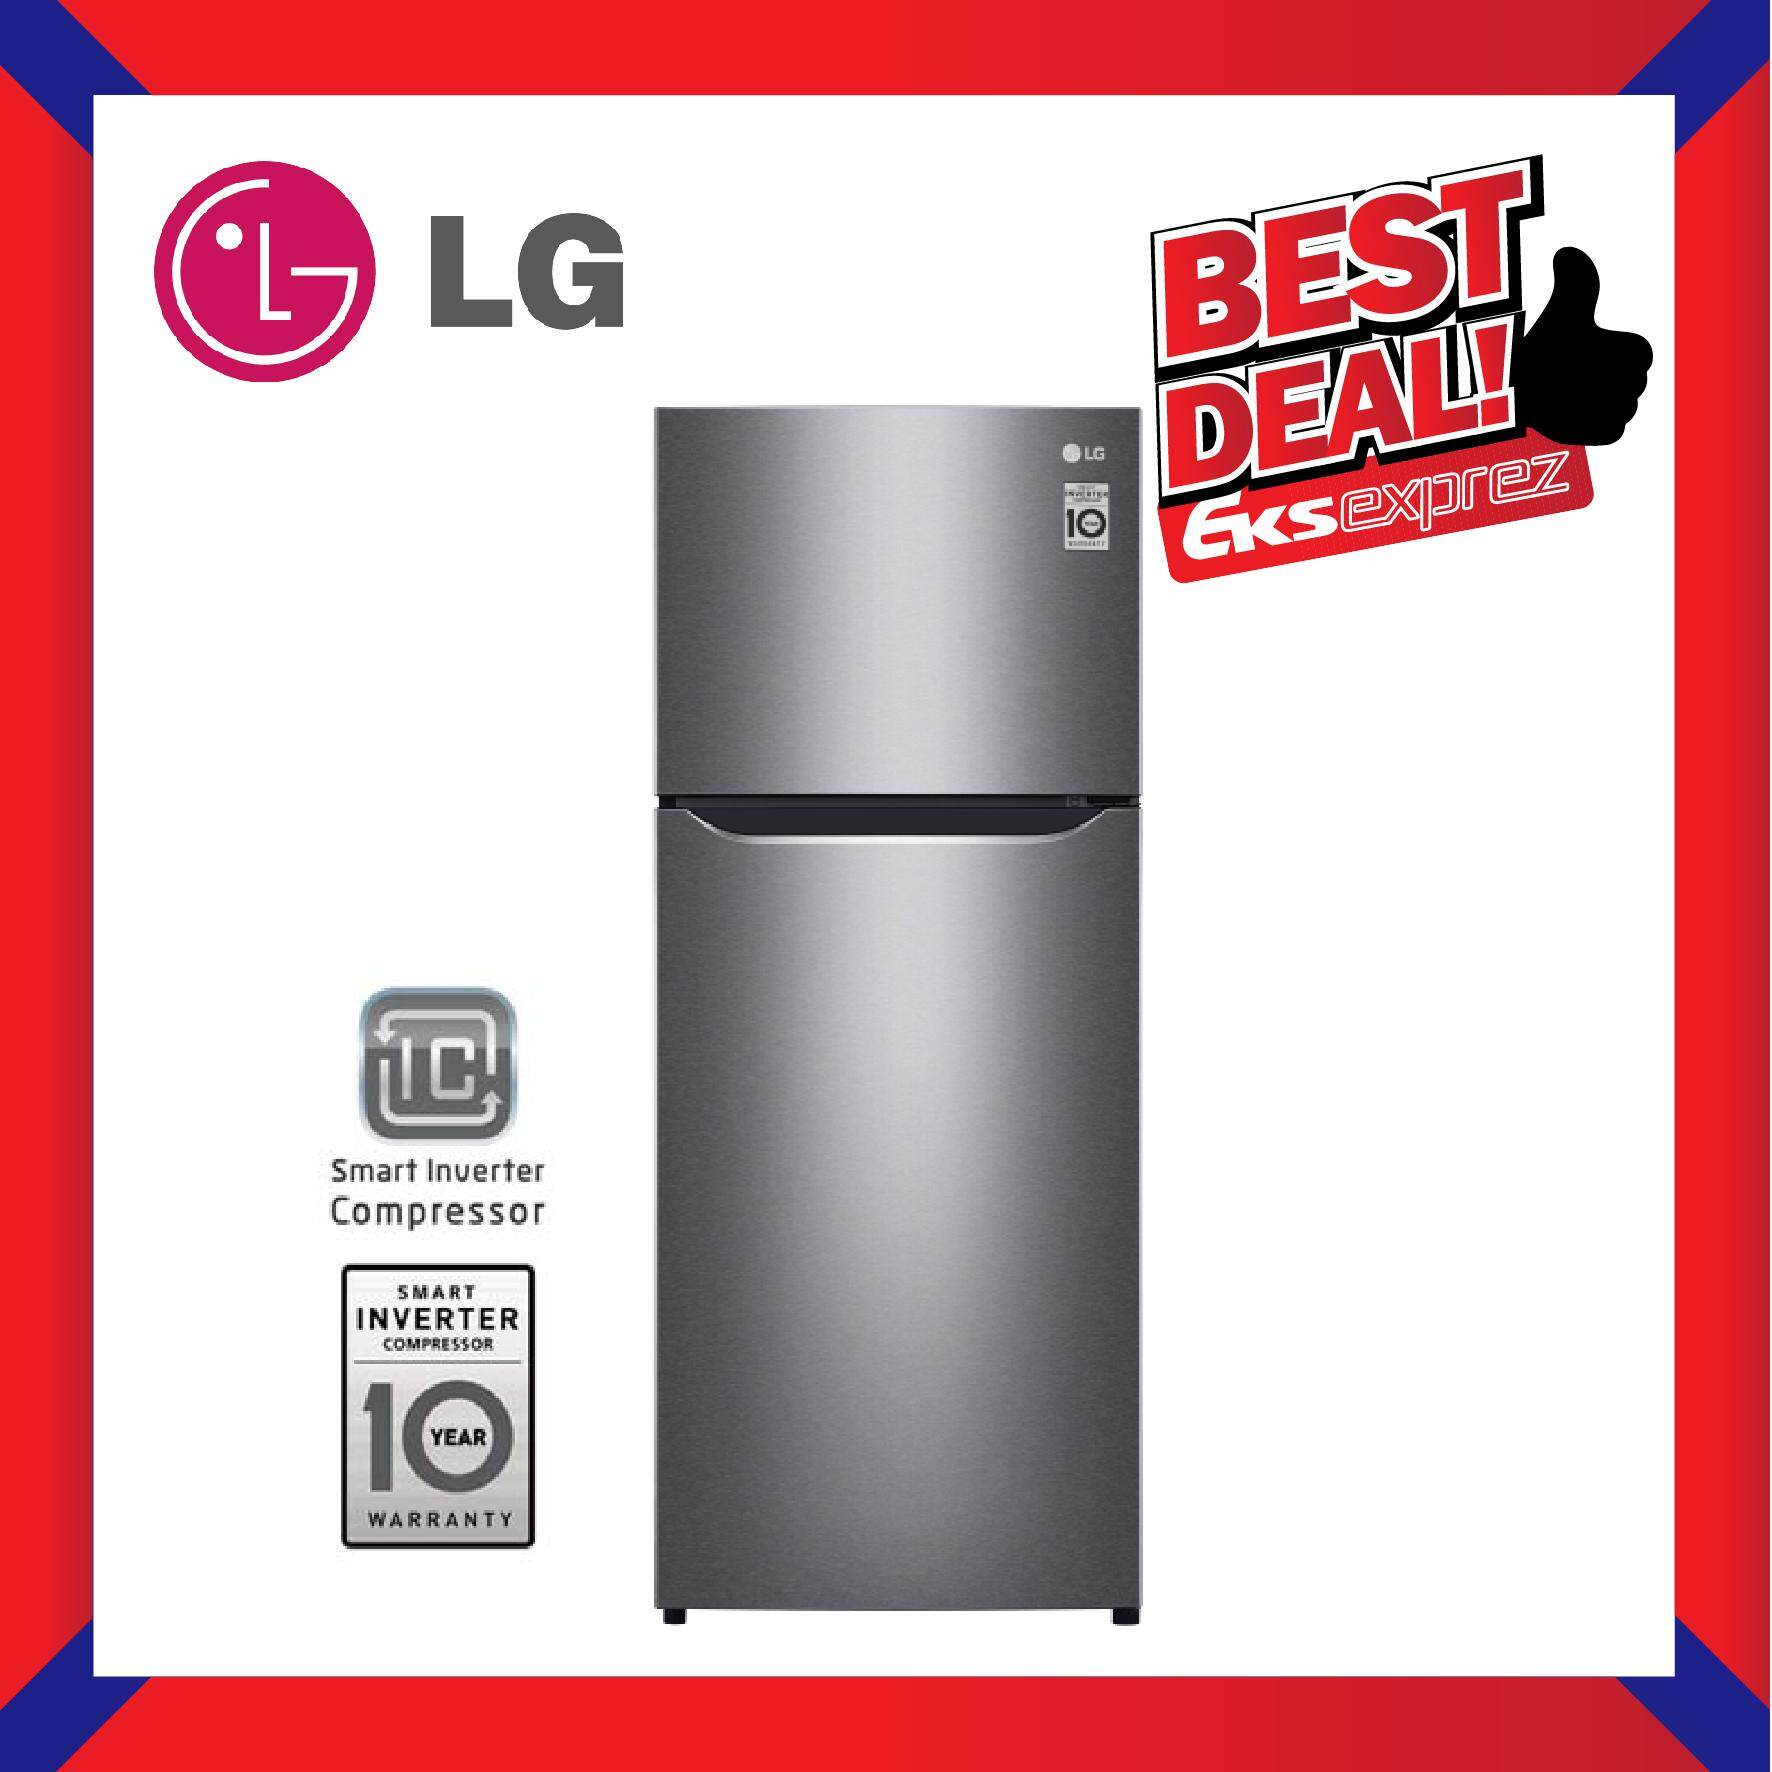 LG GN-B202SQBB 2-Door 205L Dark Graphite Steel Top Freezer Fridge / Refrigerator with Smart Inverter Compressor